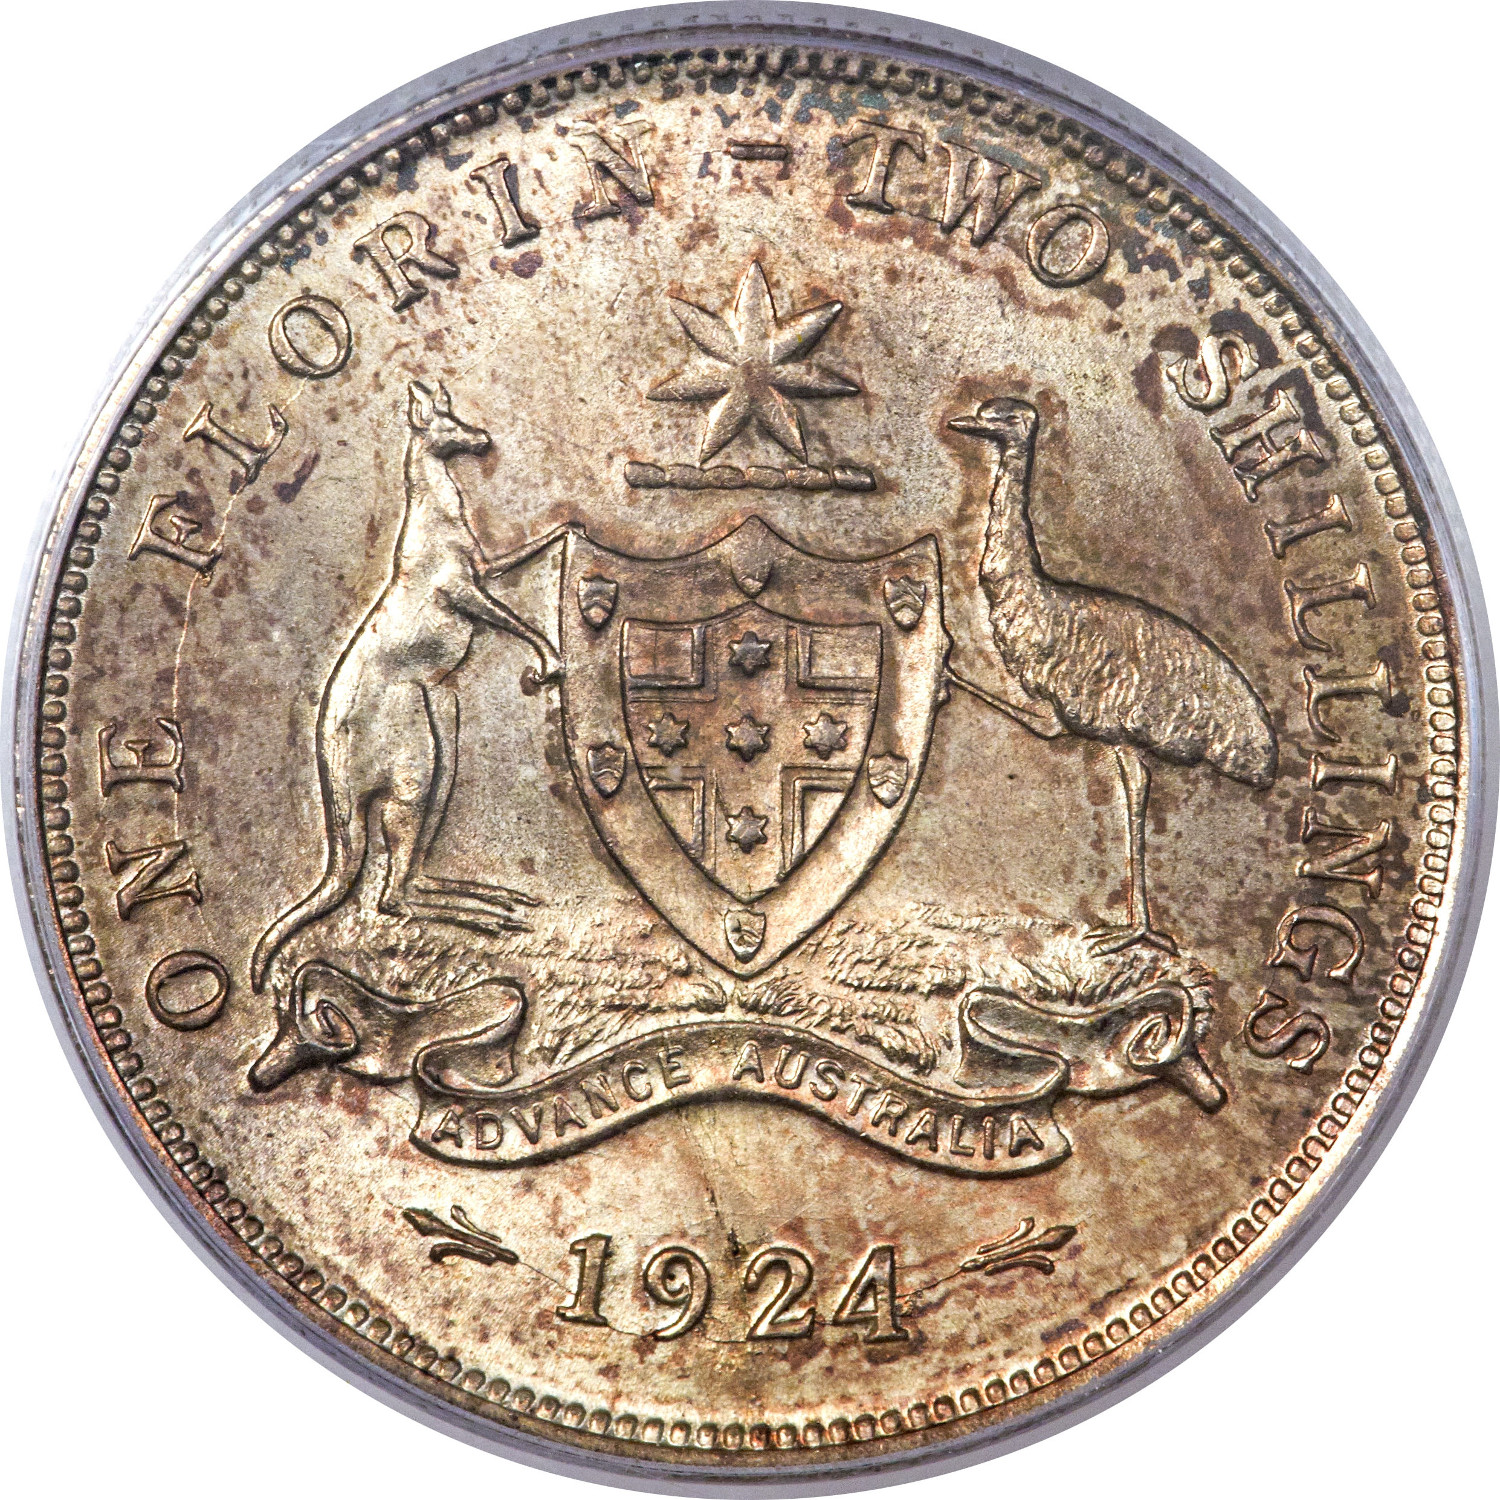 Florin - 1908 Coat of Arms: Photo Australia 1924 florin